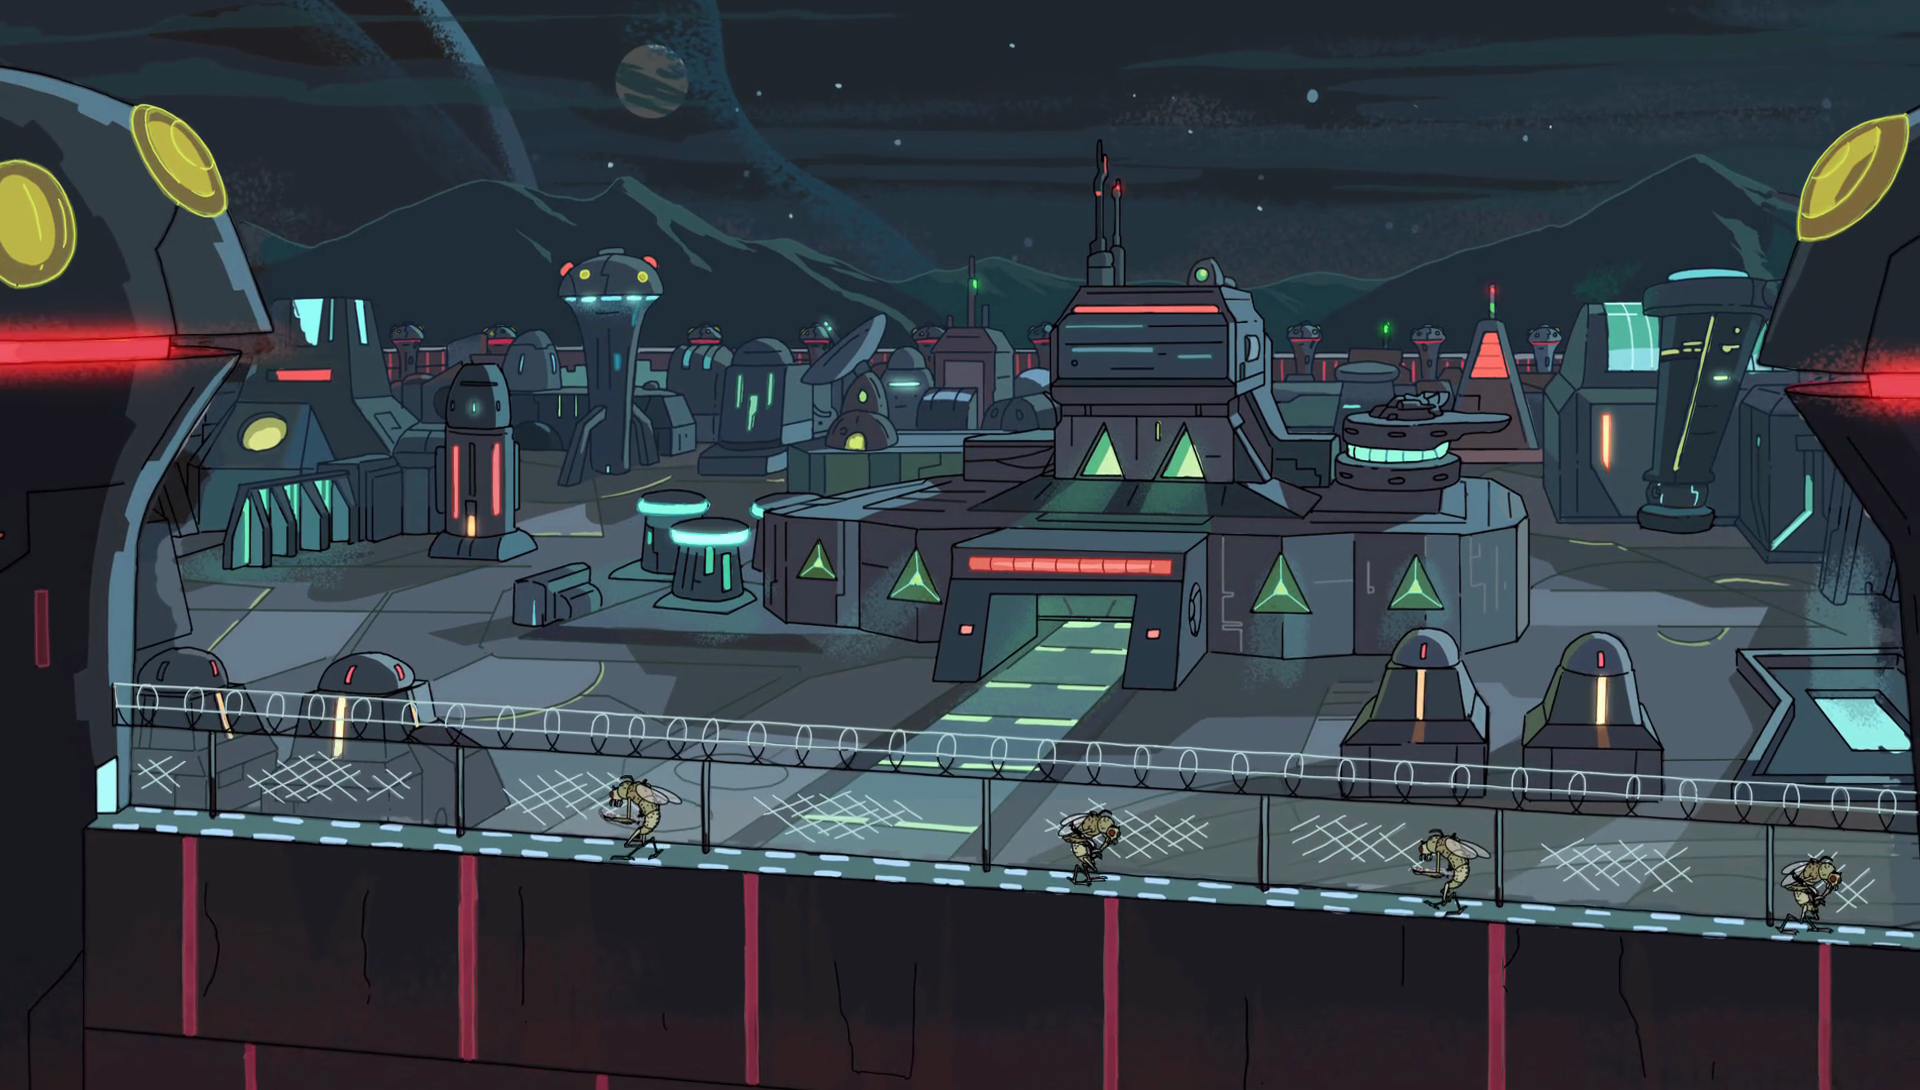 Galactic Federation Outpost